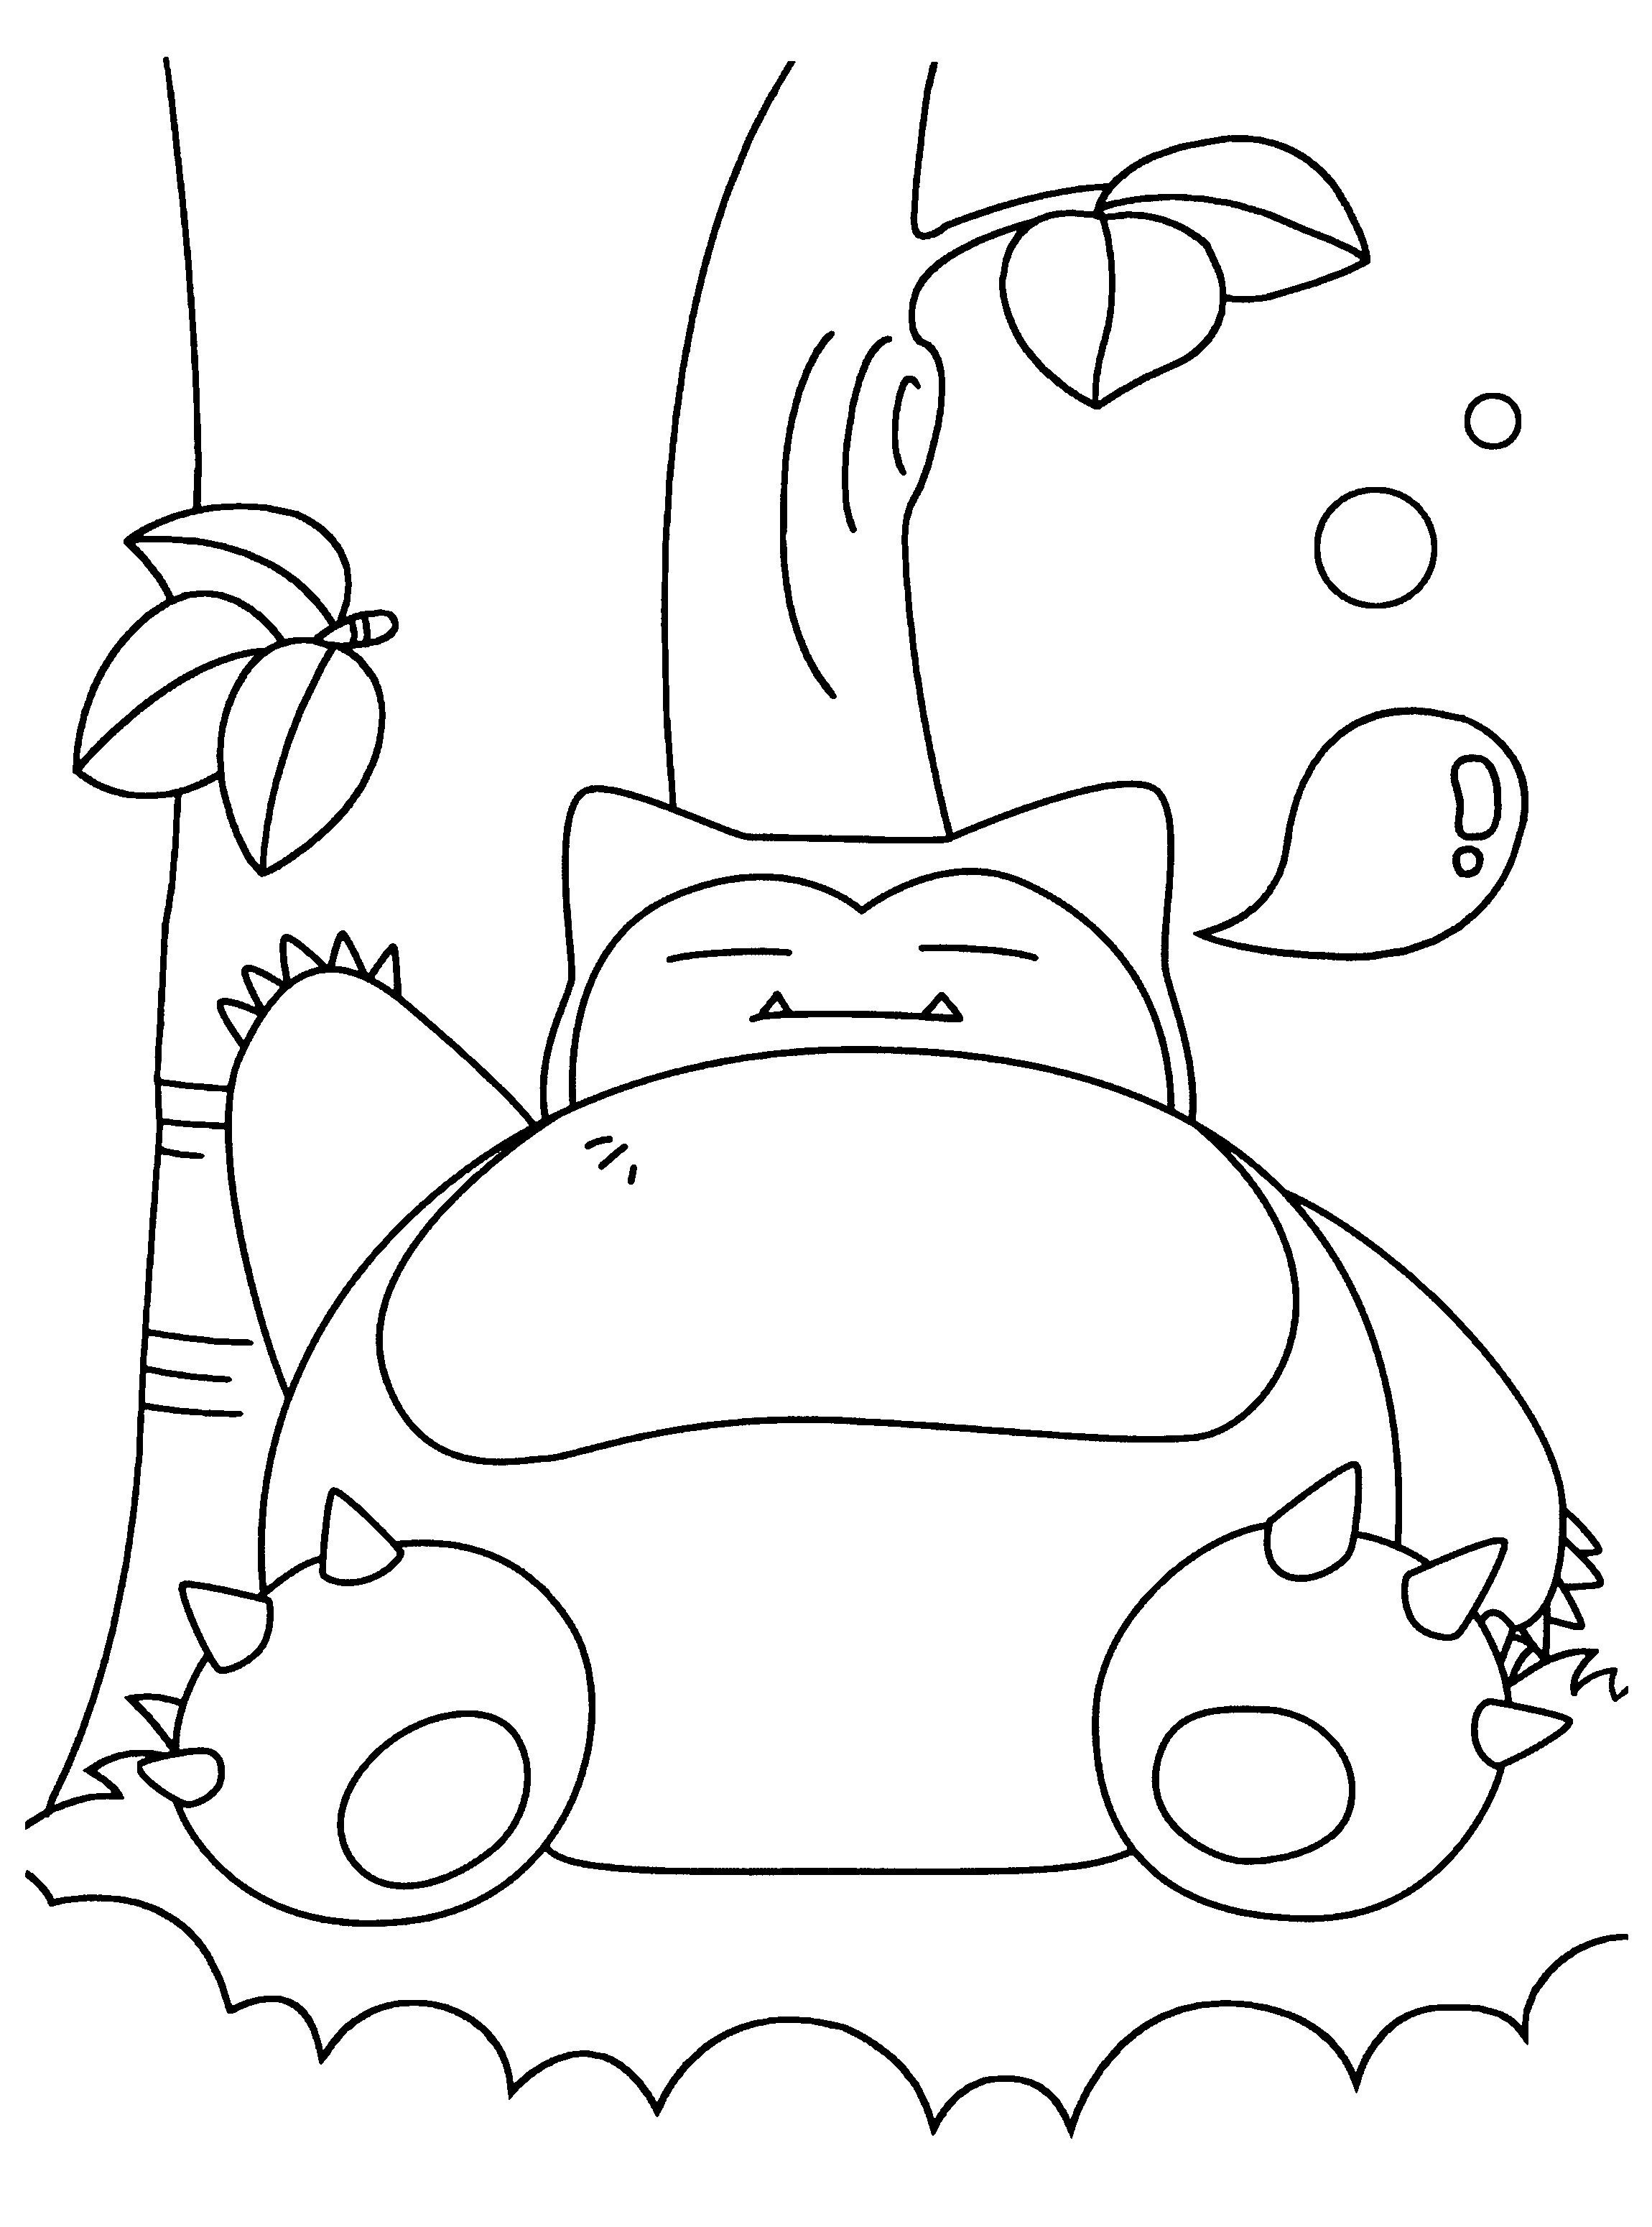 20 Snorlax Coloring Pages Collections Free Part 3 Rh Adultcoloringpages Club